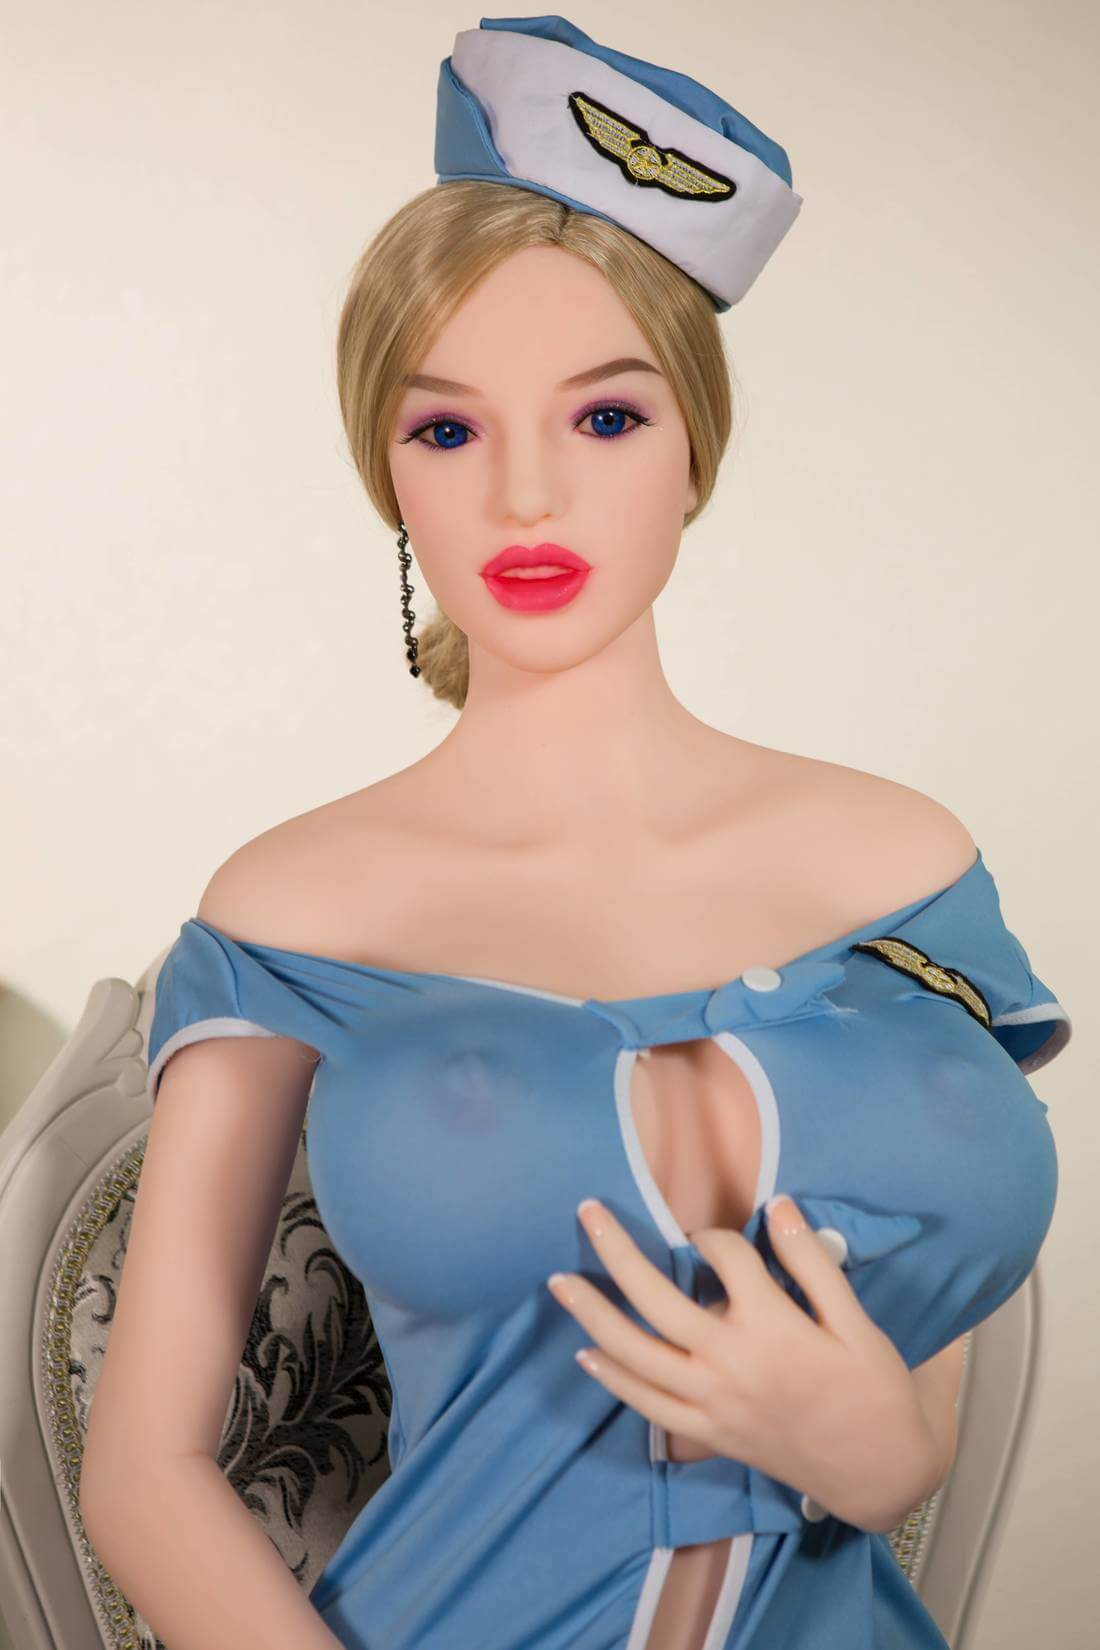 Hot Skinny Blonde Sex Doll - Renee